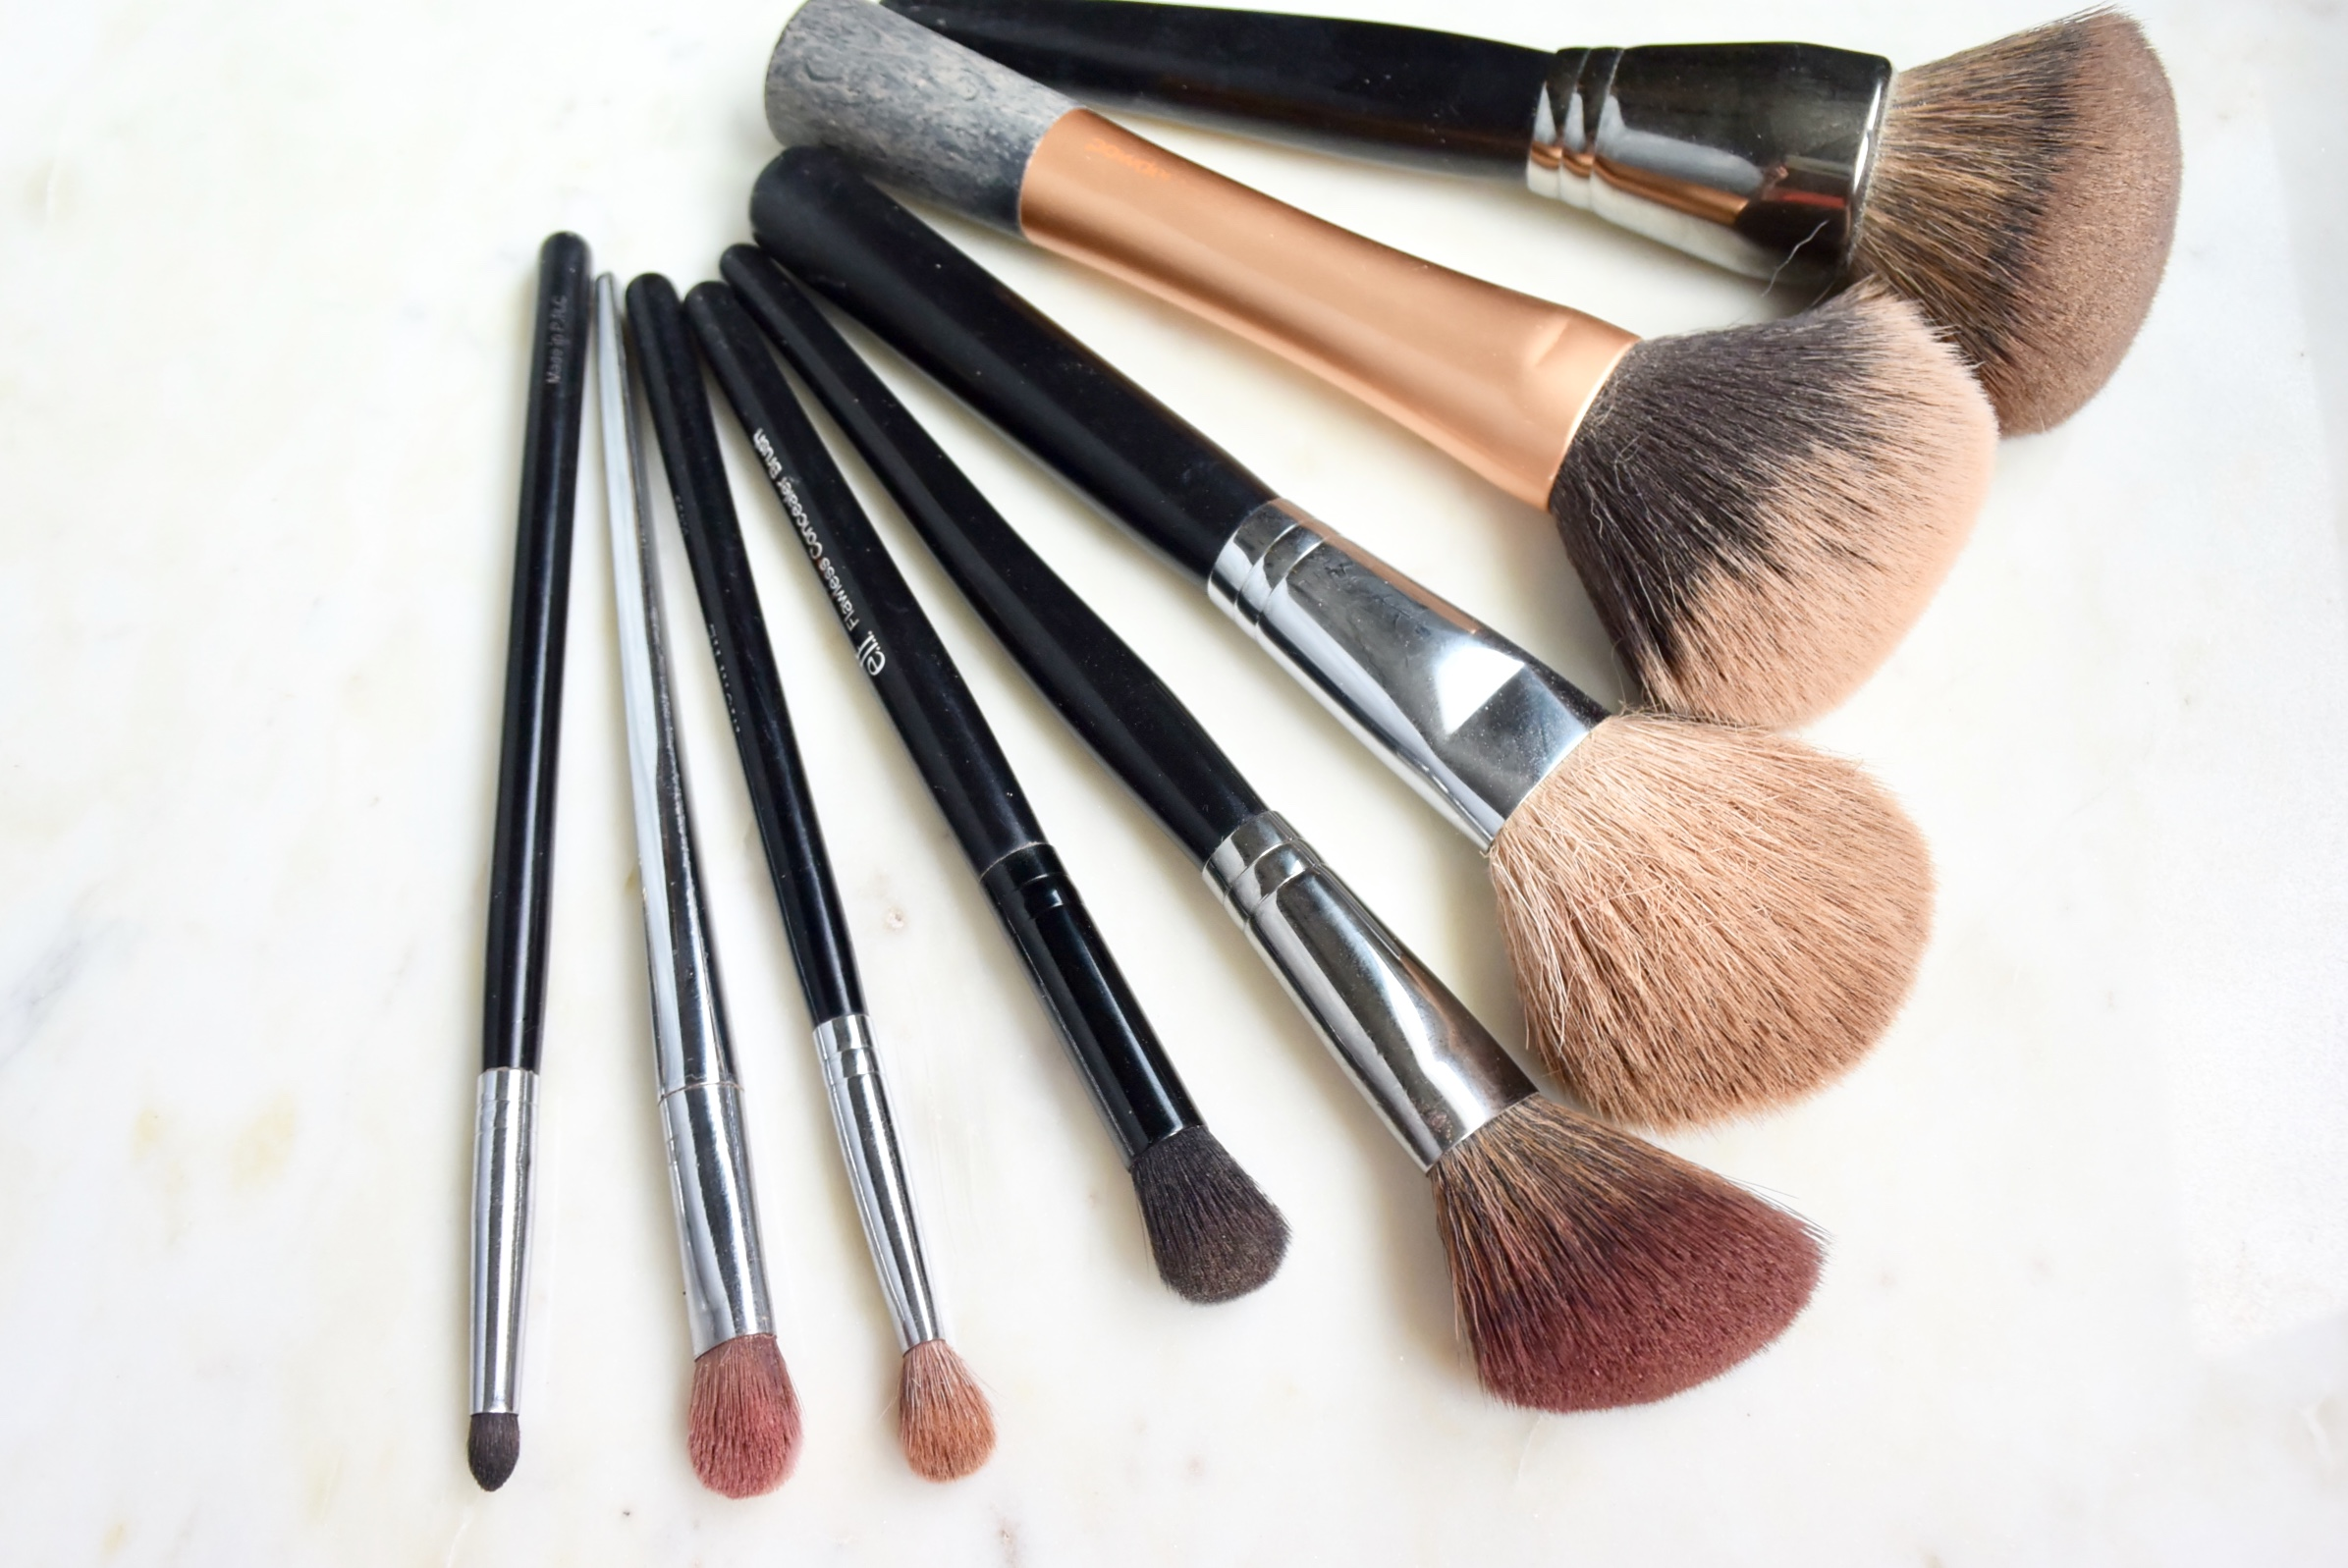 My Top Makeup Brushes / Face & Eyes